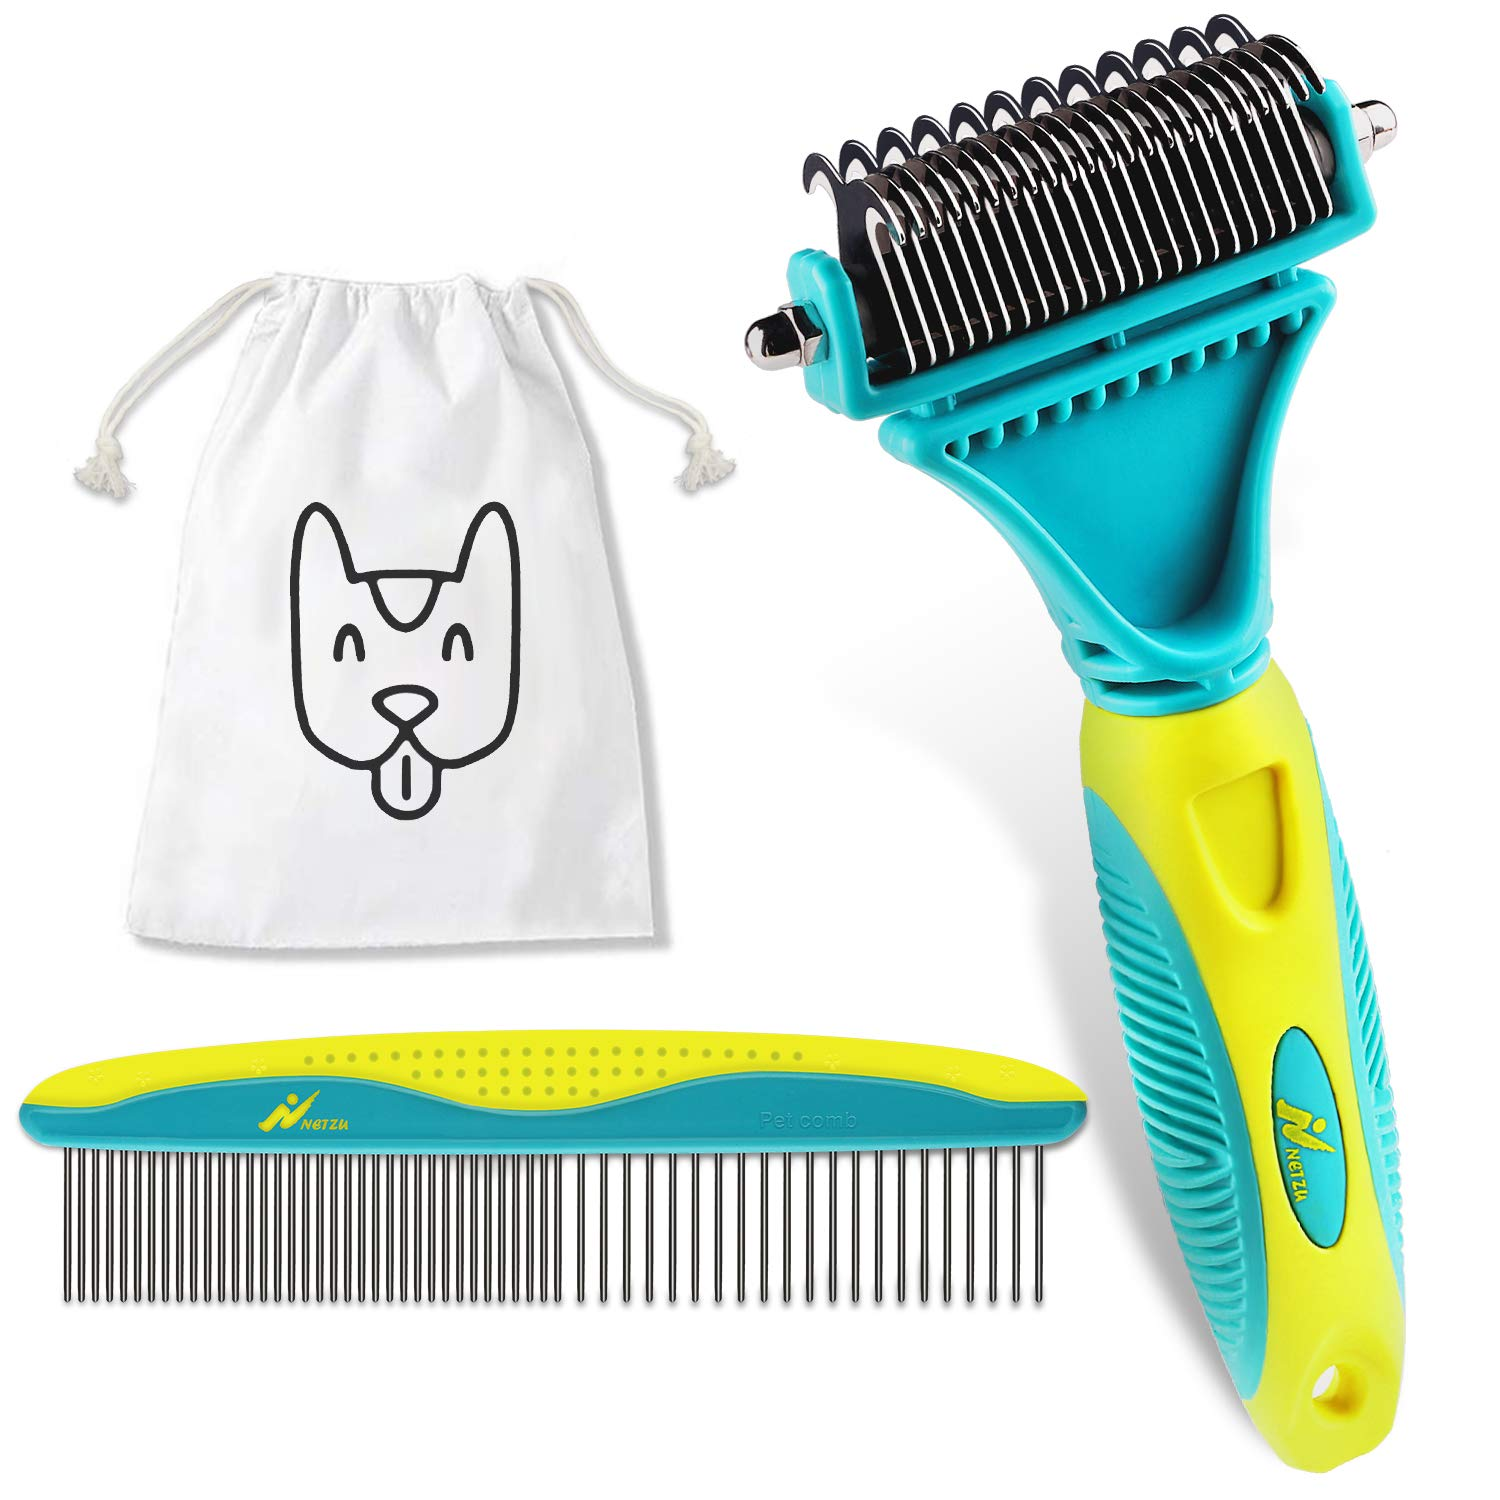 Netzu Pet Grooming Dematting Brush Set, 3-in-1 Large Pet Comb Deshedding Tool for Long Hair Pets with 2 Sided Professional Grooming Rake, Comes with Pouch Bag.